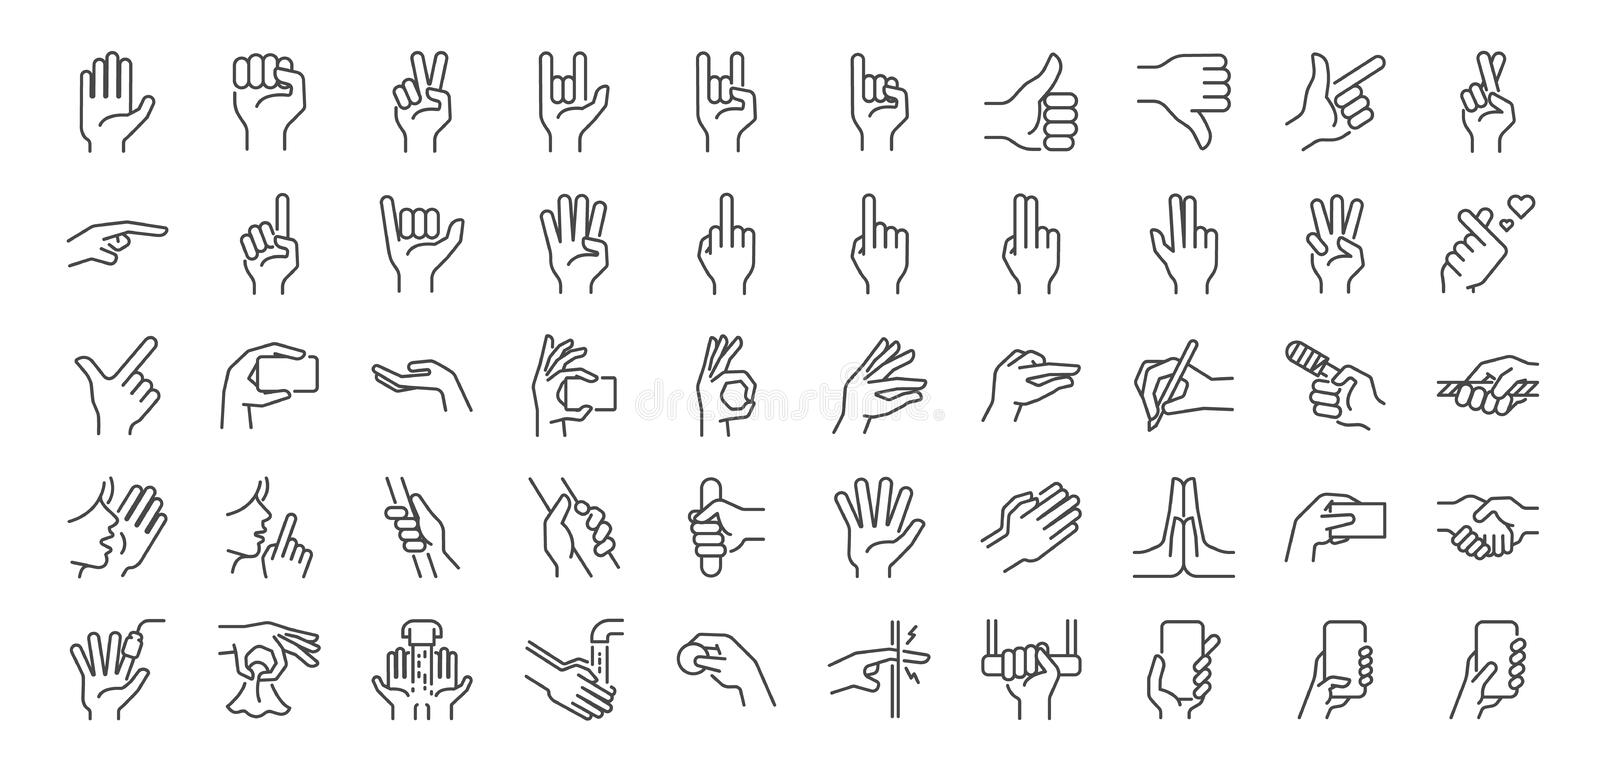 Hand gestures line icon set. Included icons as fingers interaction, pinky swear, forefinger point, greeting, pinch, hand washing stock illustration